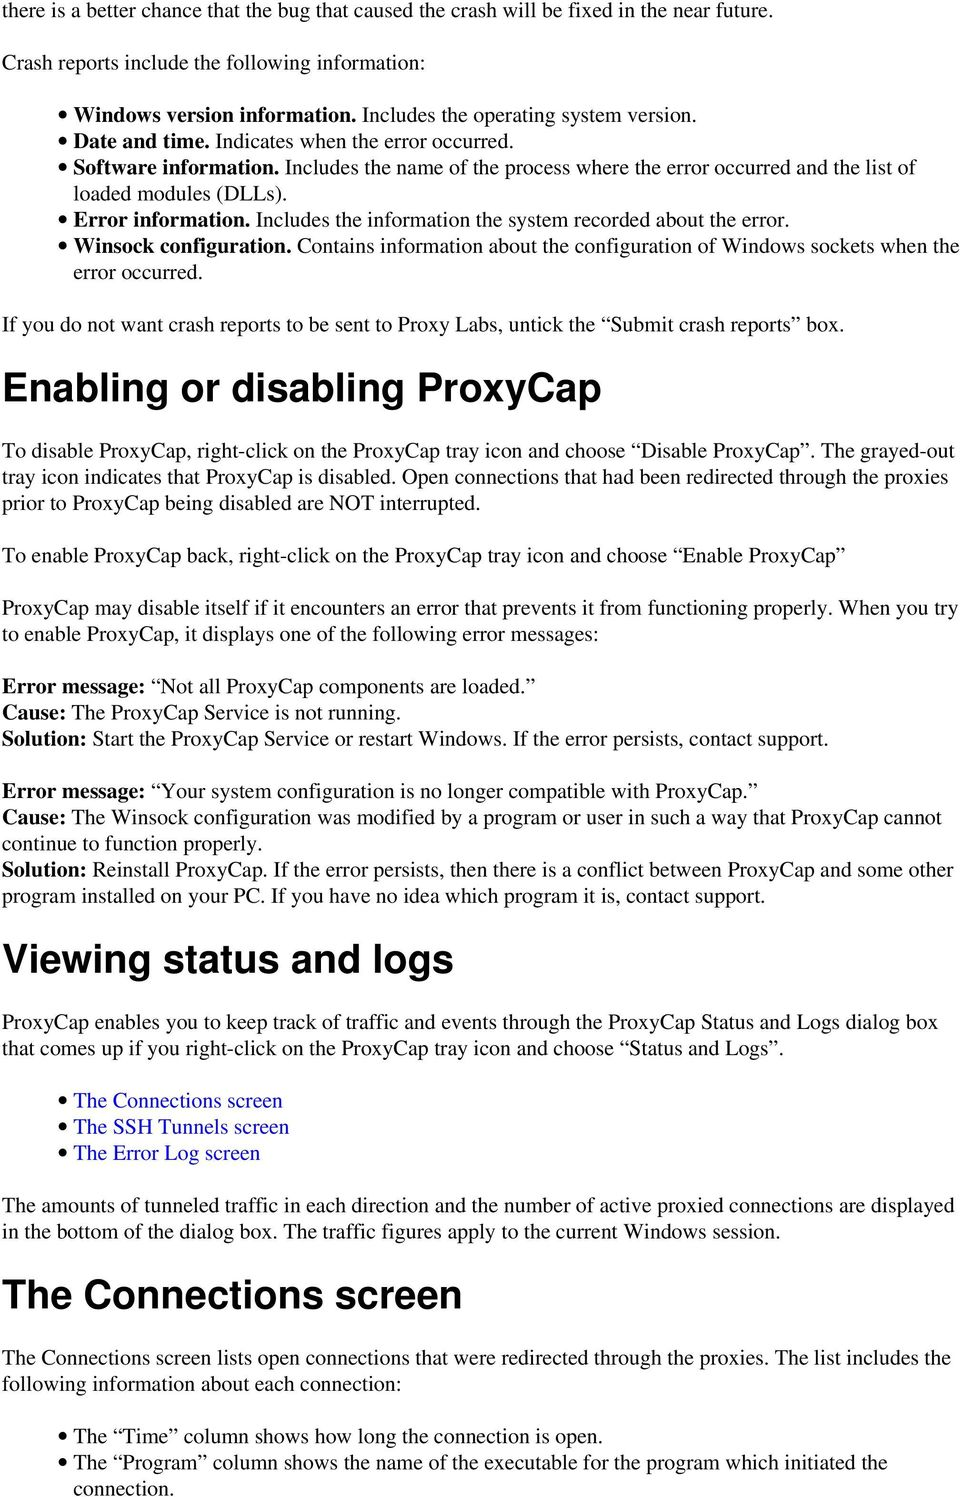 ProxyCap Help  Table of contents  Configuring ProxyCap Proxy Labs - PDF